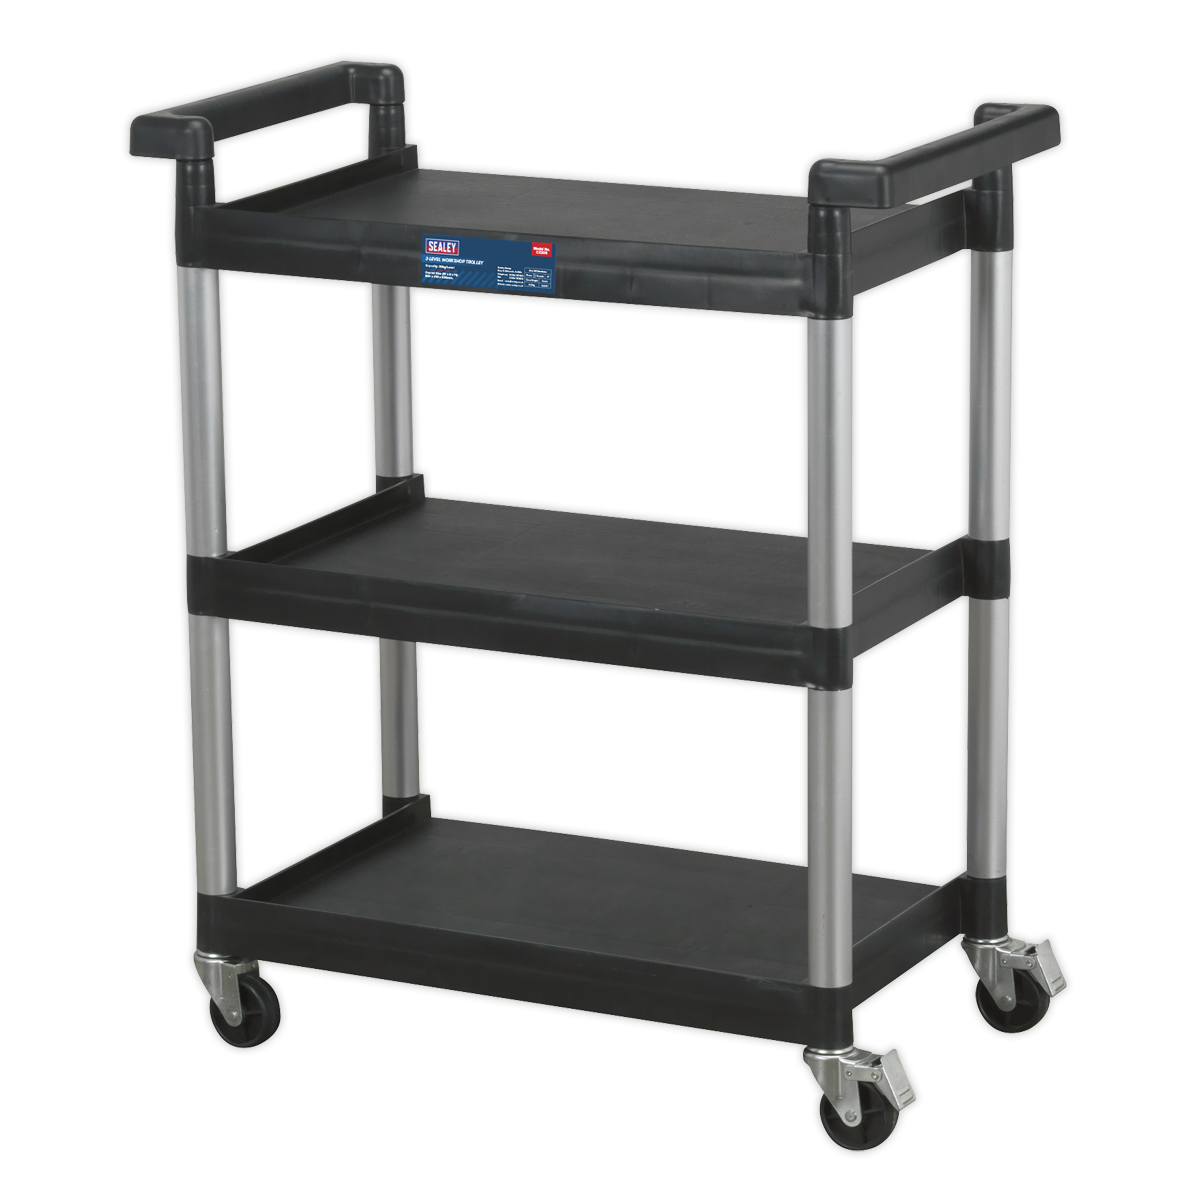 Sealey Workshop Trolley 3-Level CX308 | Composite garage workshop trolley with a 30kg capacity per shelf. | Four large castors, two locking. | toolforce.ie